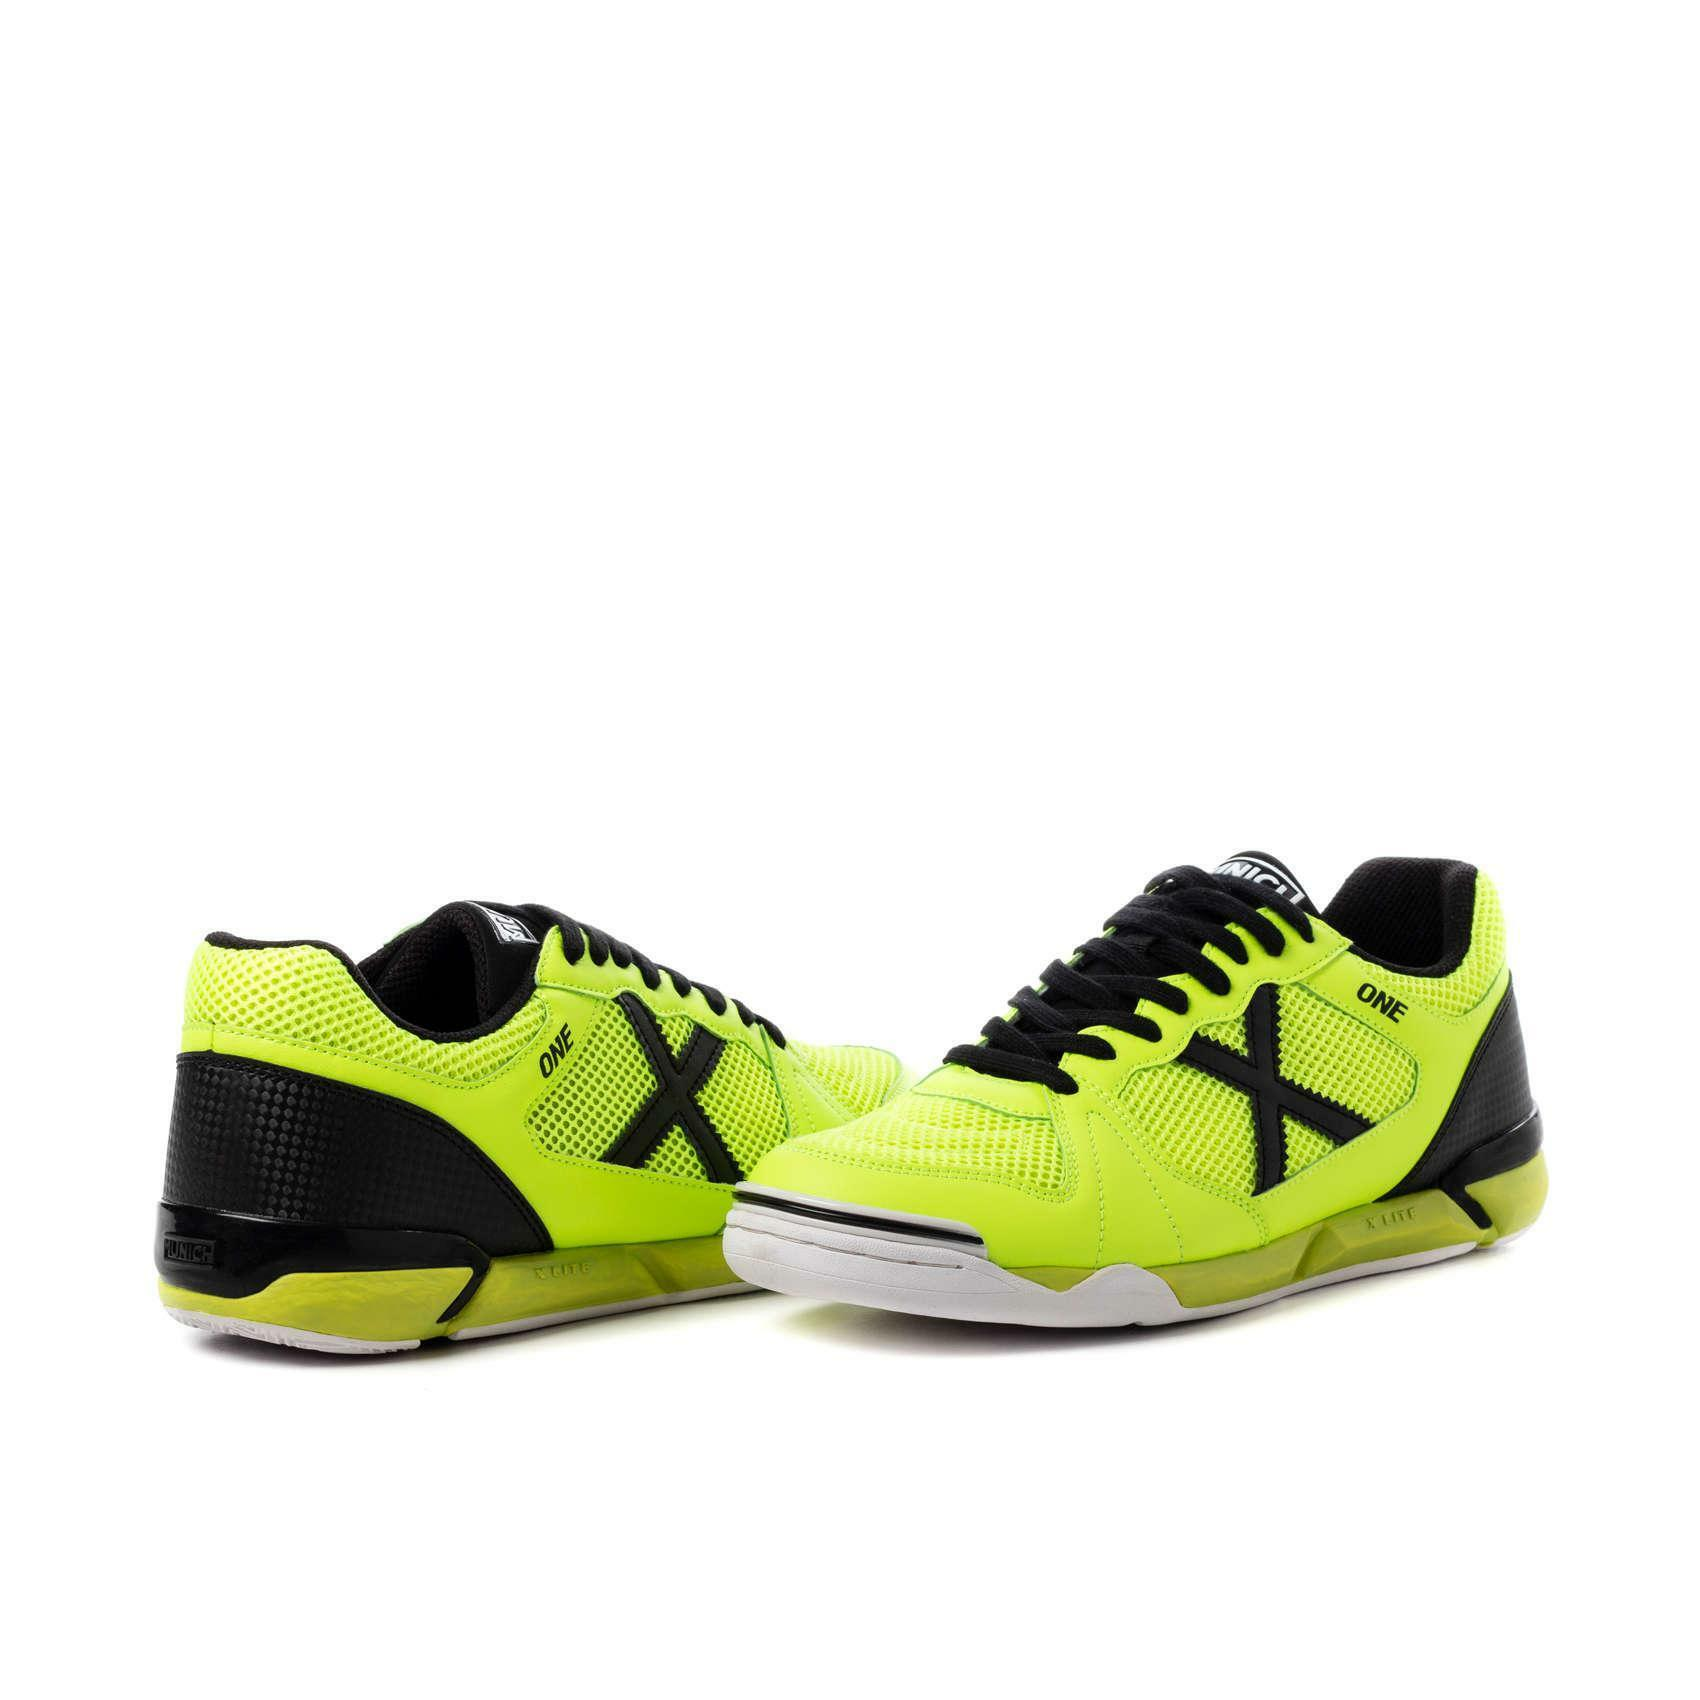 munich munich scarpa calcetto one indoor giallo fluo